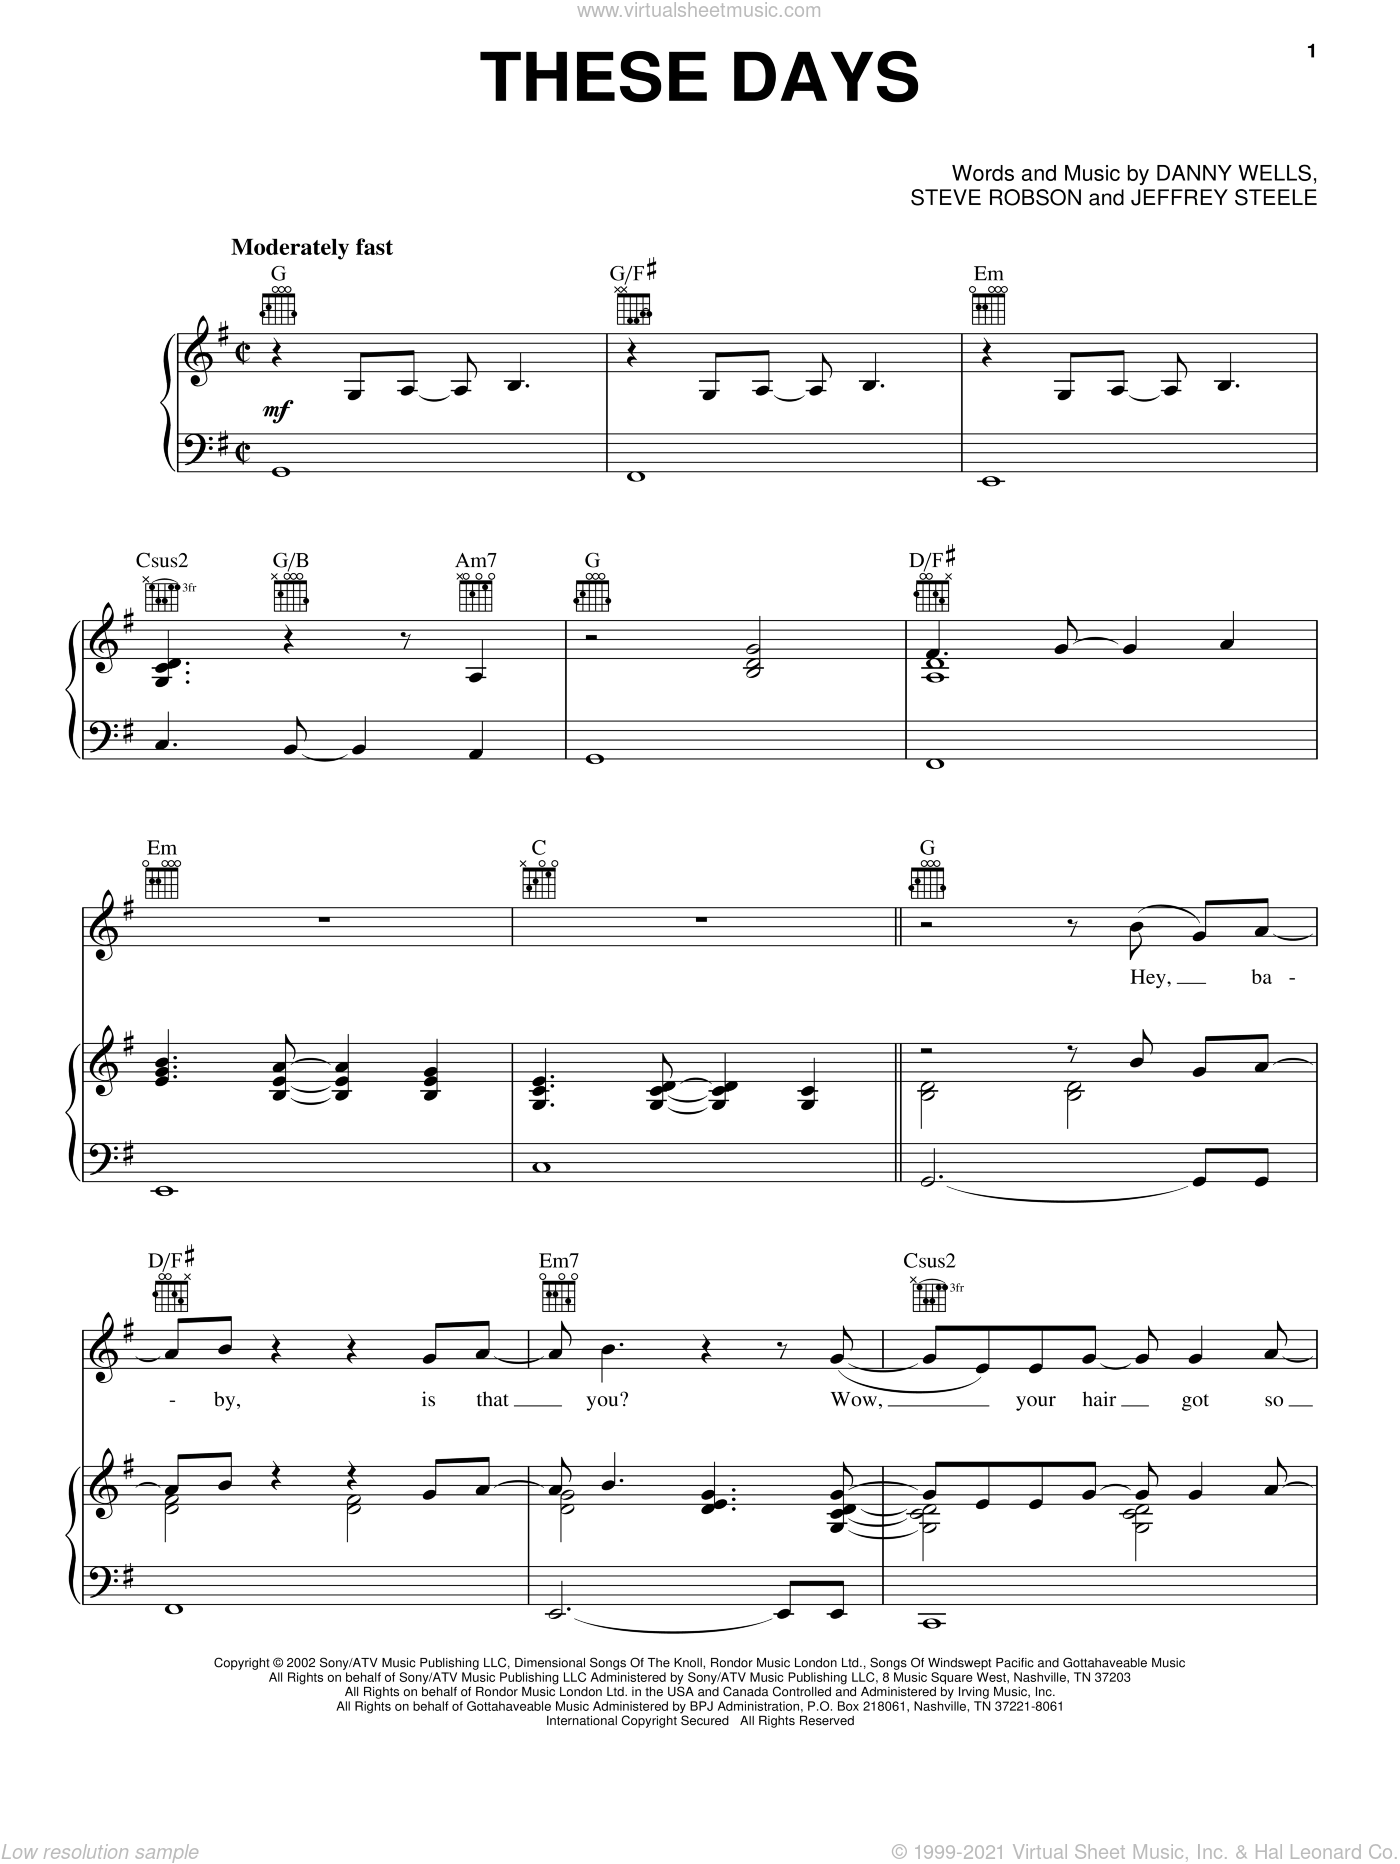 These Days sheet music for voice, piano or guitar by Rascal Flatts, Danny Wells, Jeffrey Steele and Steve Robson, intermediate skill level